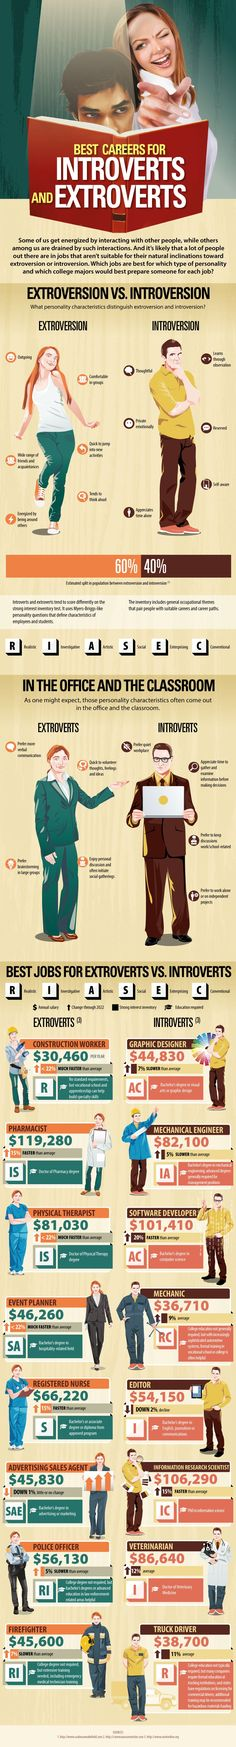 The Career Assessment Site found the best careers for introverts versus for extroverts. #site:financialinfo.site